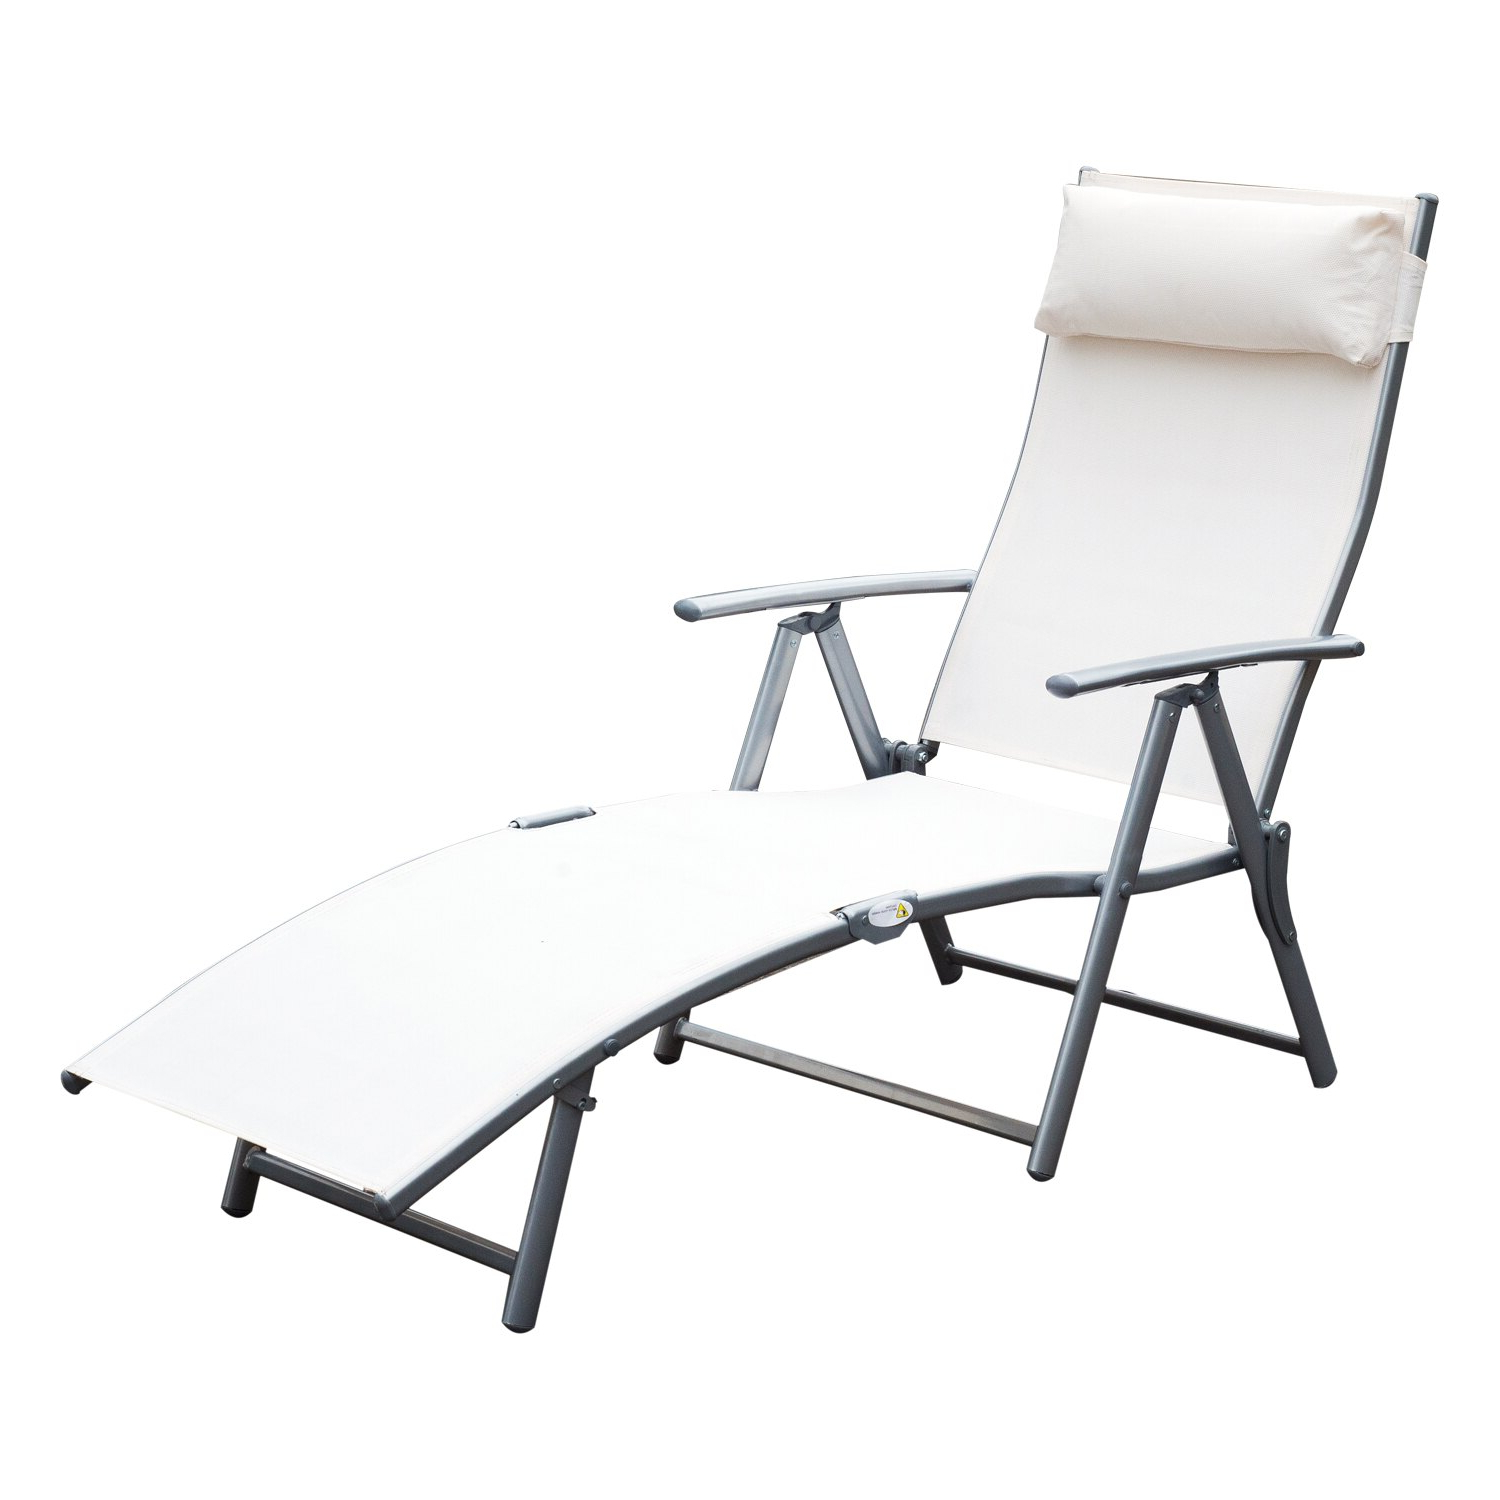 Reclining Sling Chaise Lounges Pertaining To Recent Outsunny Sling Fabric Patio Reclining Chaise Lounge Chair Folding 5 Position Adjustable Outdoor Deck With Cushion – Cream White (View 7 of 25)